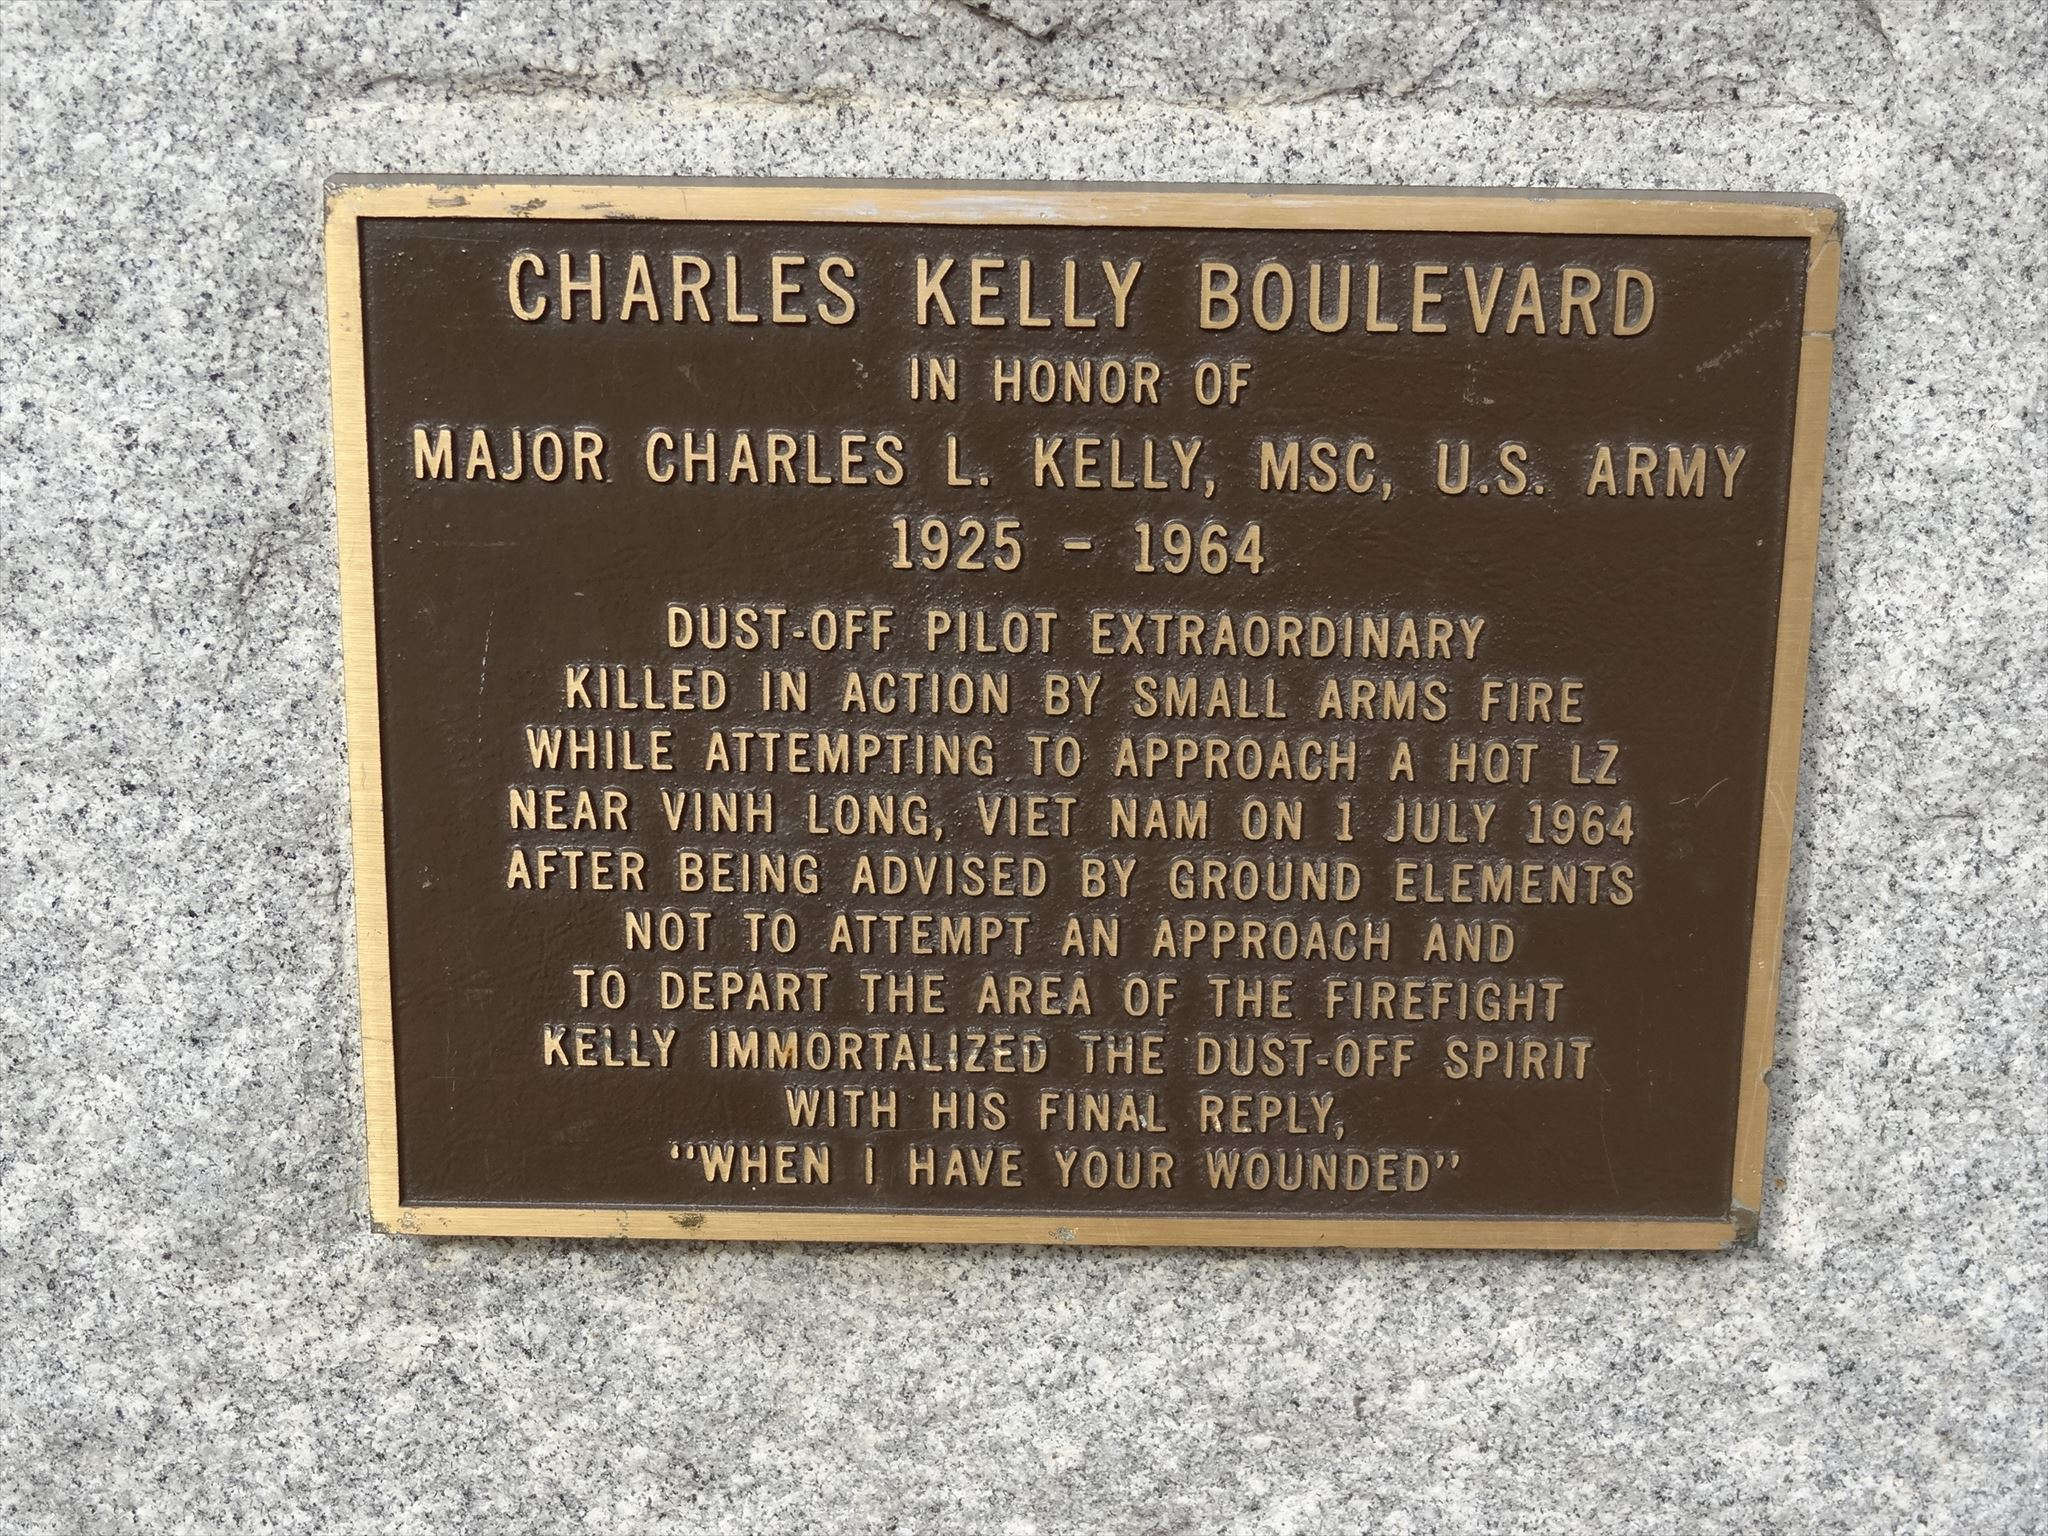 This is the monument placed in honor of Major Charles L Kelly. His last words are inscribed on the monument.